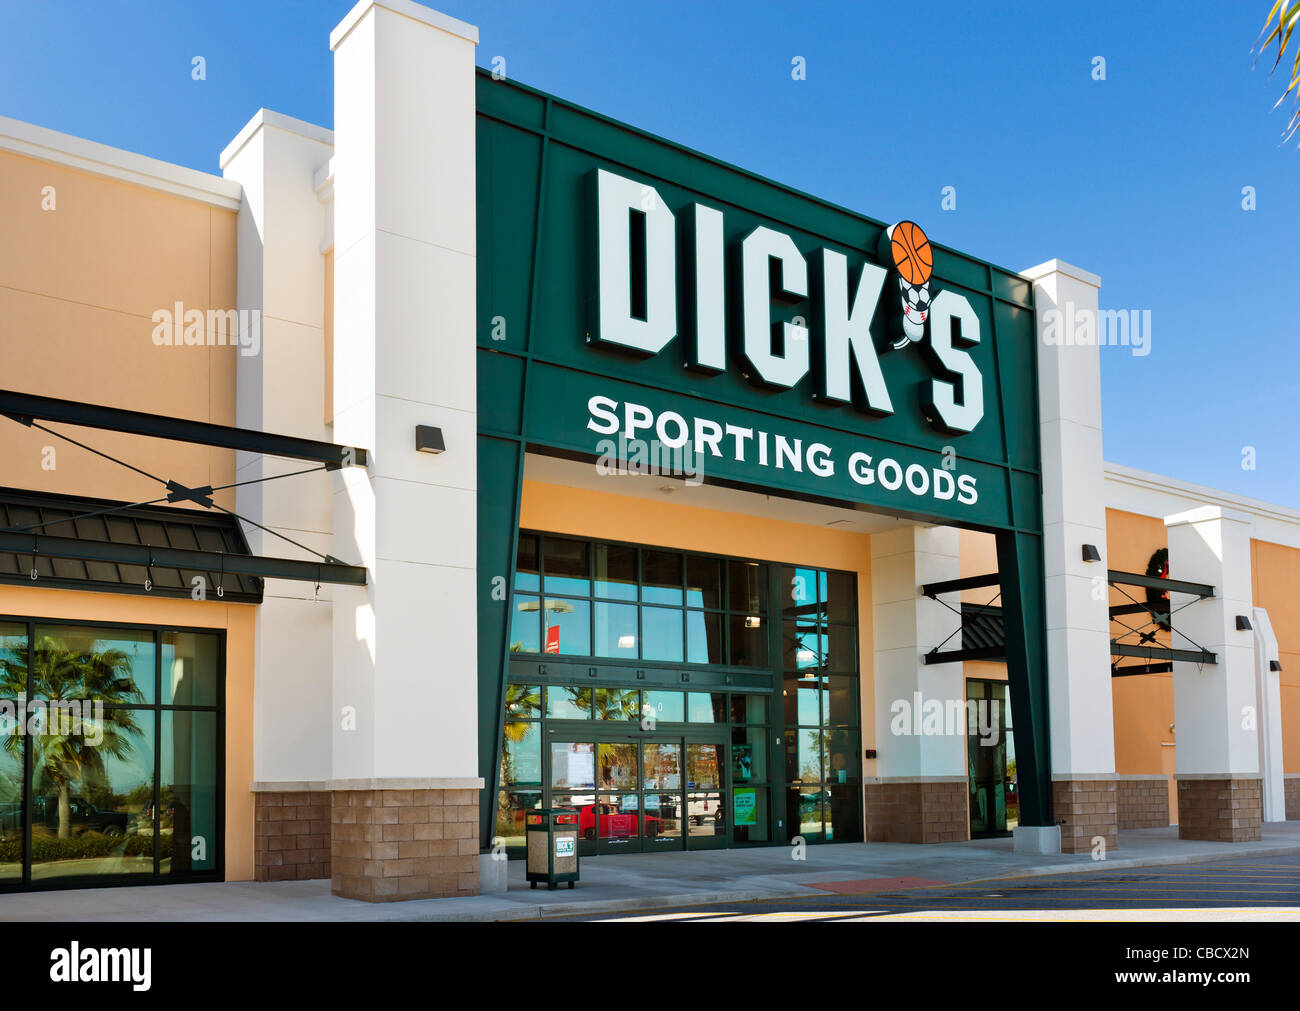 dick sporting good